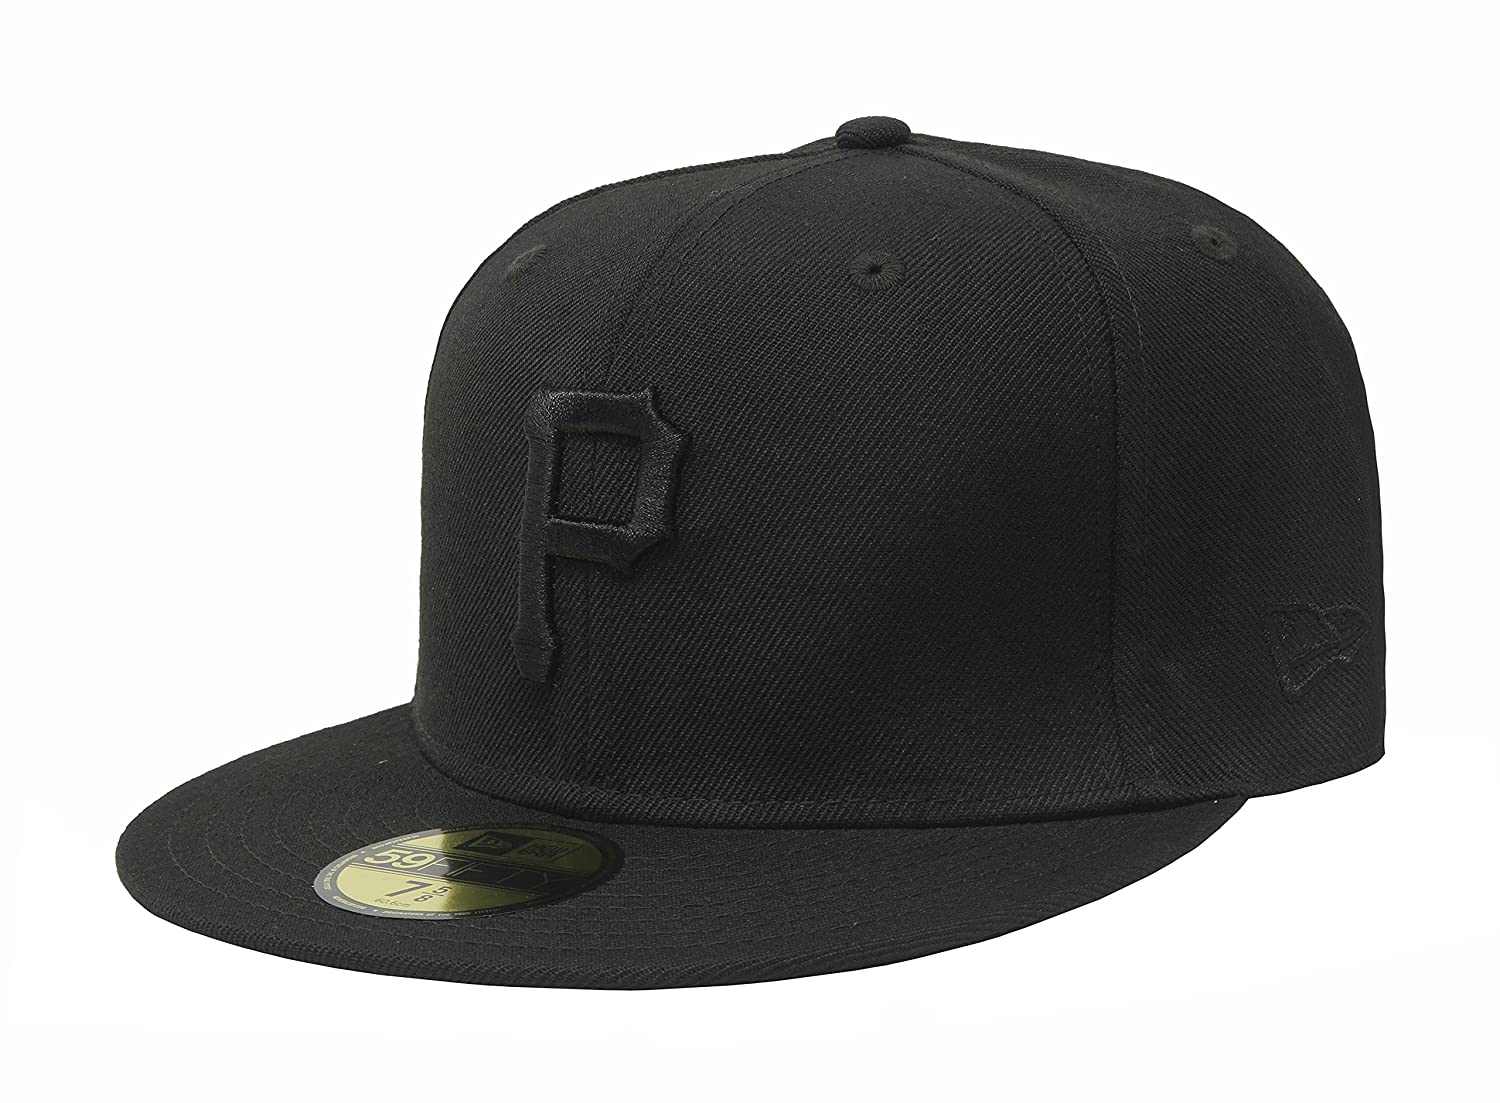 New Era 59Fifty Hat Pittsburgh Pirates Black on Black Fitted Cap 11591115  at Amazon Men s Clothing store  bc633055f3c6